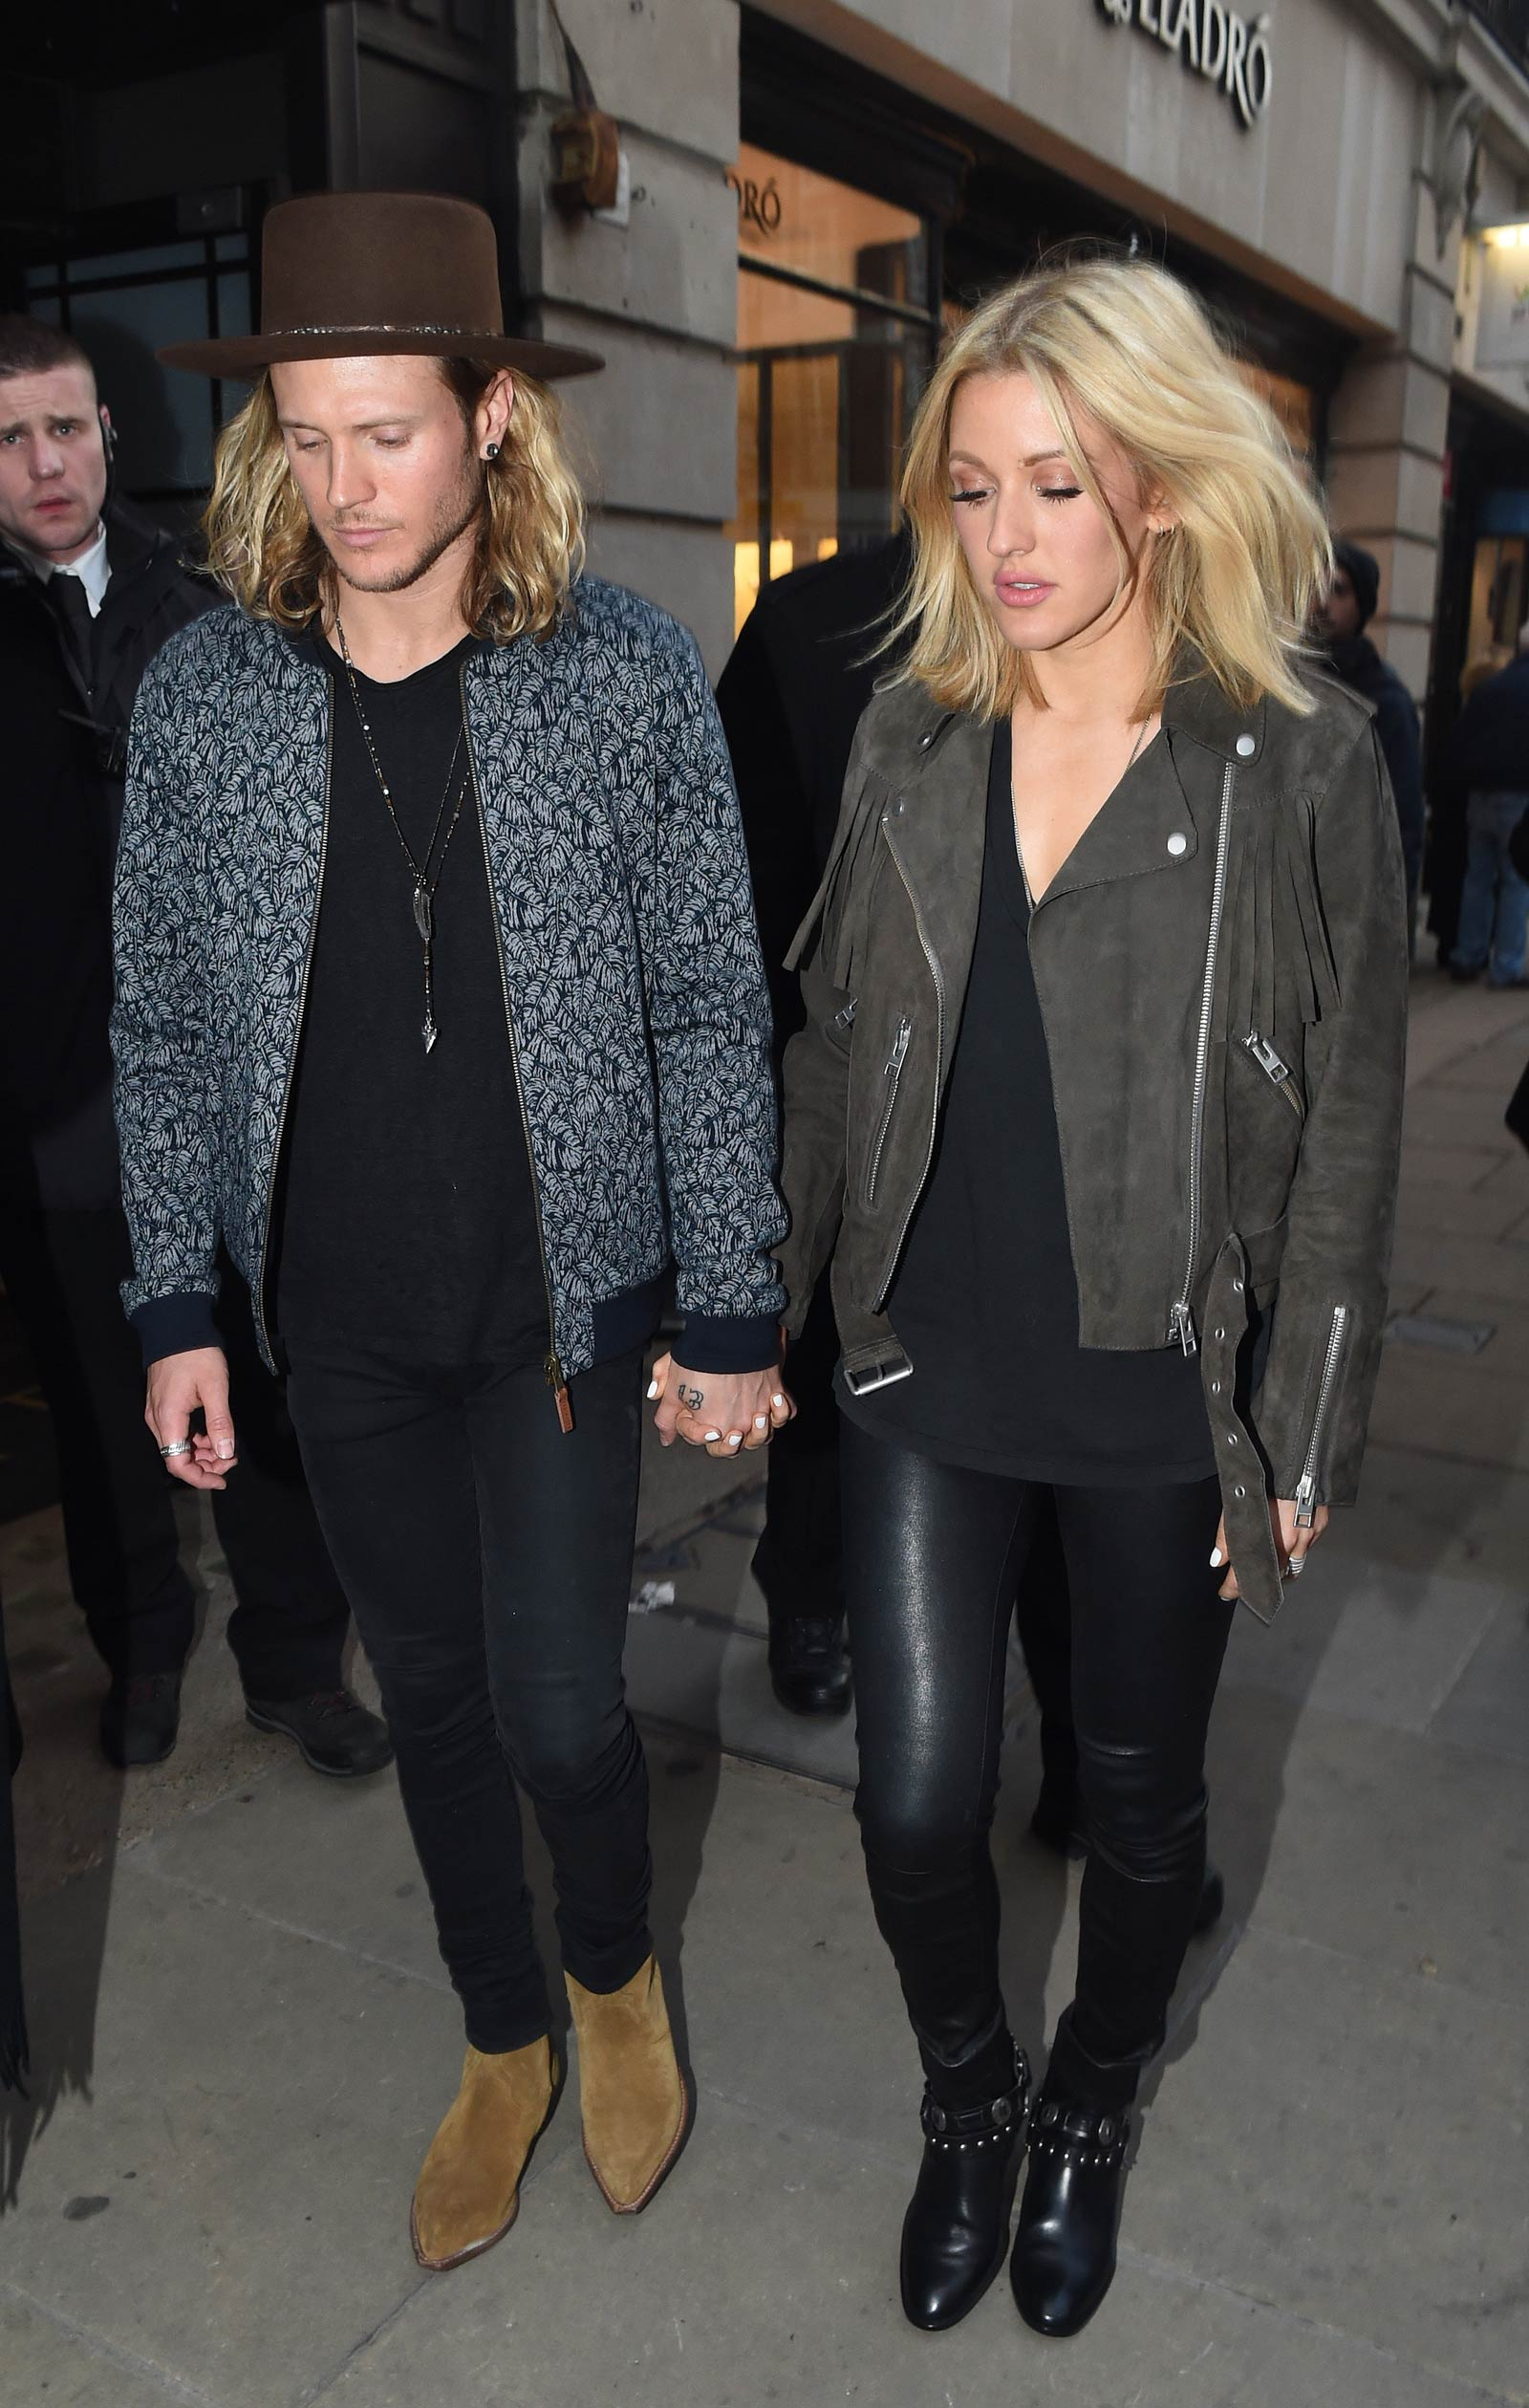 Ellie Goulding heading to a private gig in London